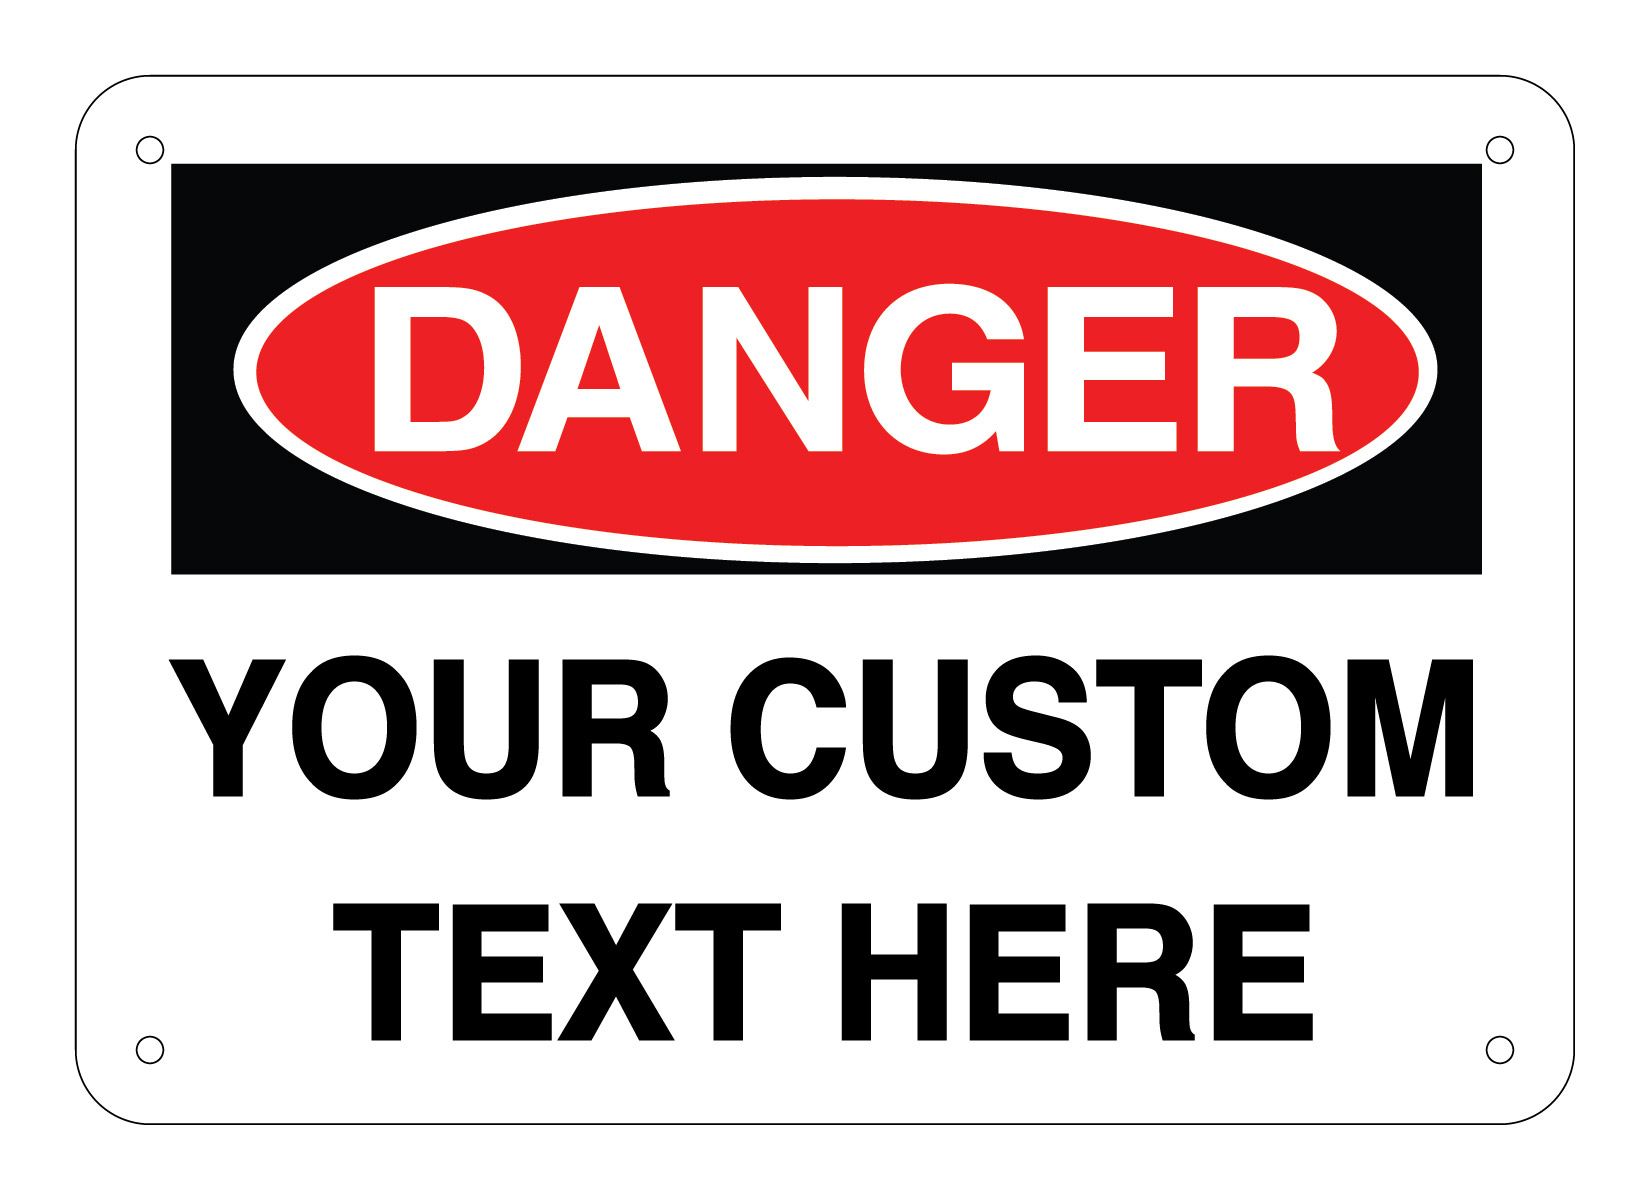 YOUR CUSTOM TEXT HERE